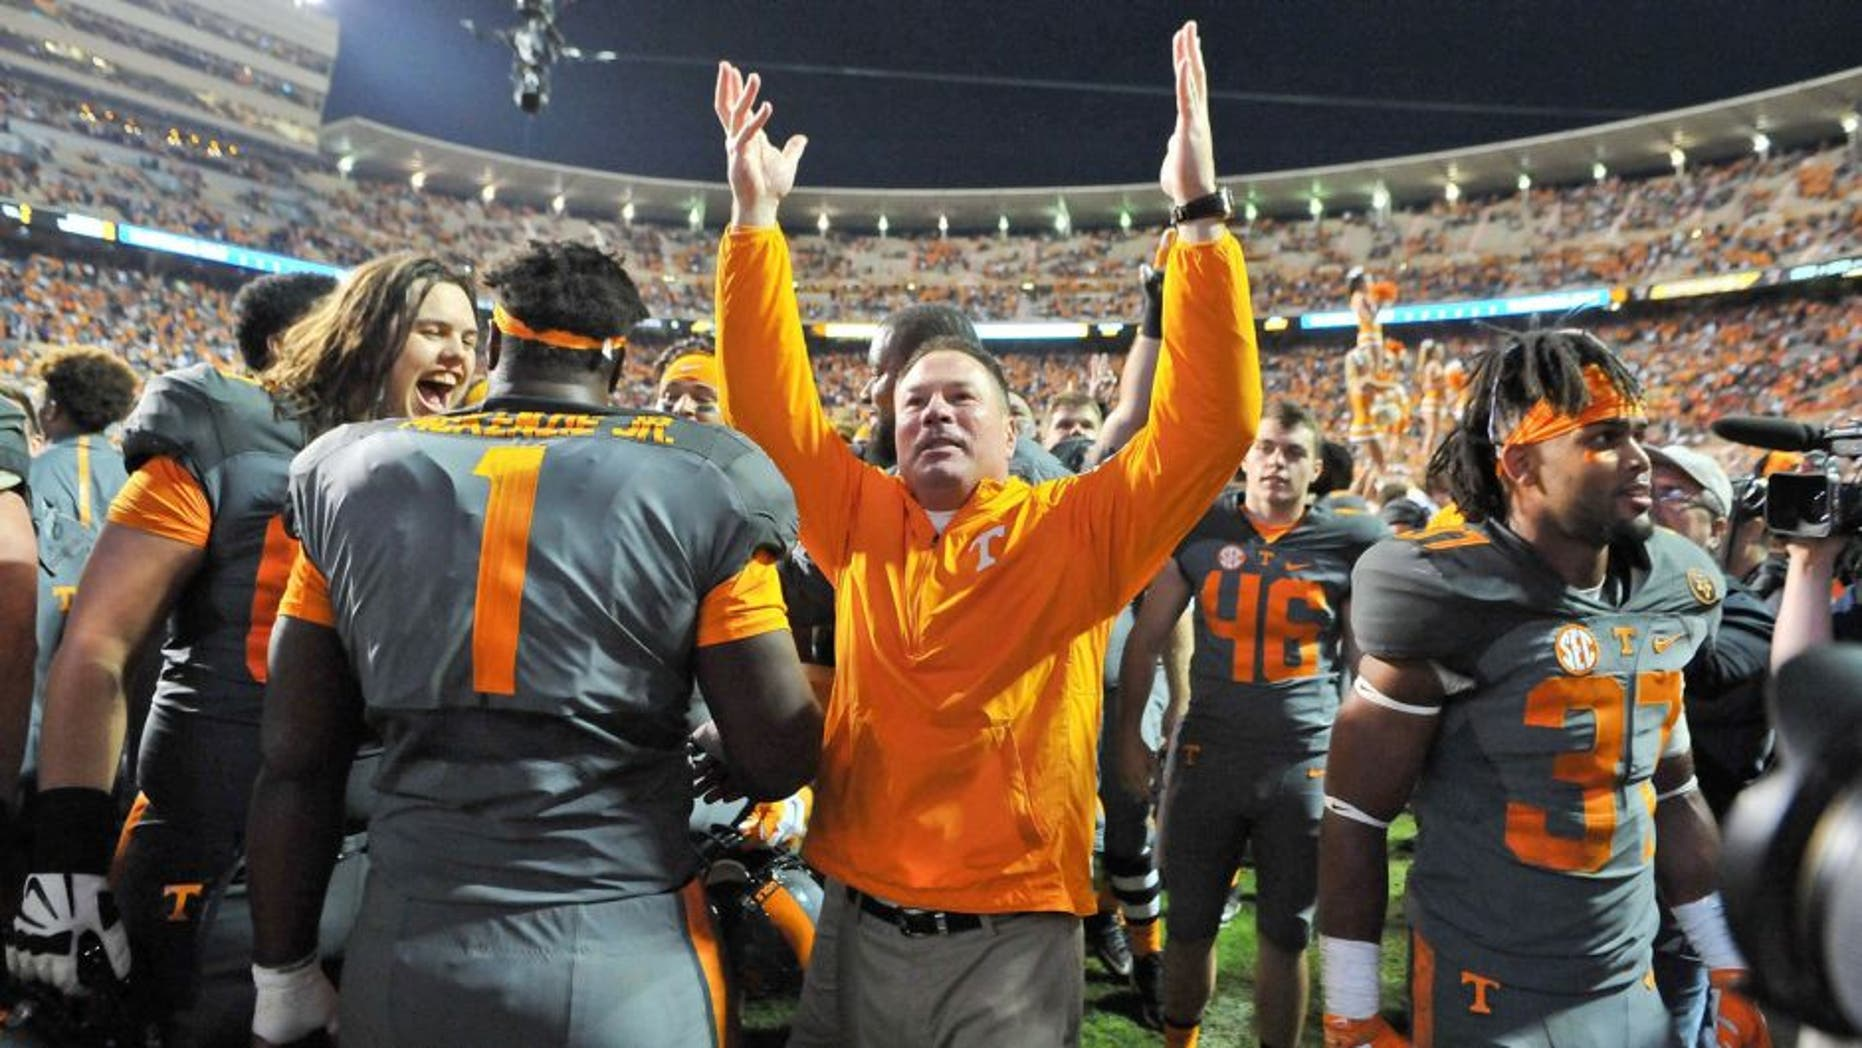 Oct 10, 2015; Knoxville, TN, USA; Tennessee Volunteers head coach Butch Jones waves to fans after his team defeated the Georgia Bulldogs during the second half at Neyland Stadium. Tennessee won 38-31. Mandatory Credit: Jim Brown-USA TODAY Sports